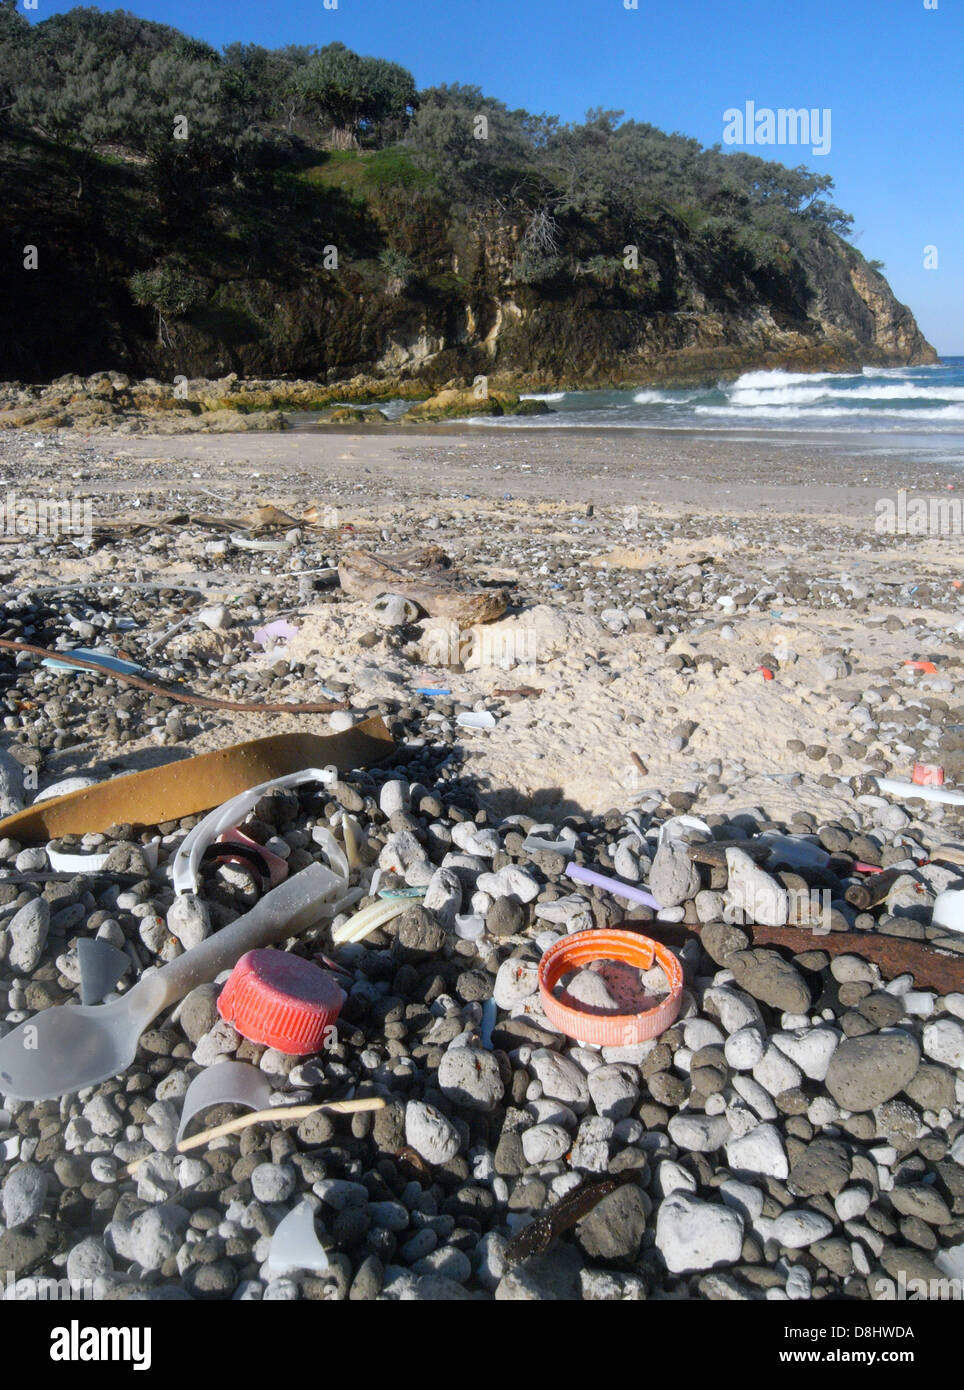 Plastic rubbish washed up amongst the pumice, South Gorge beach, North Stradbroke Island, Queensland, Australia - Stock Image